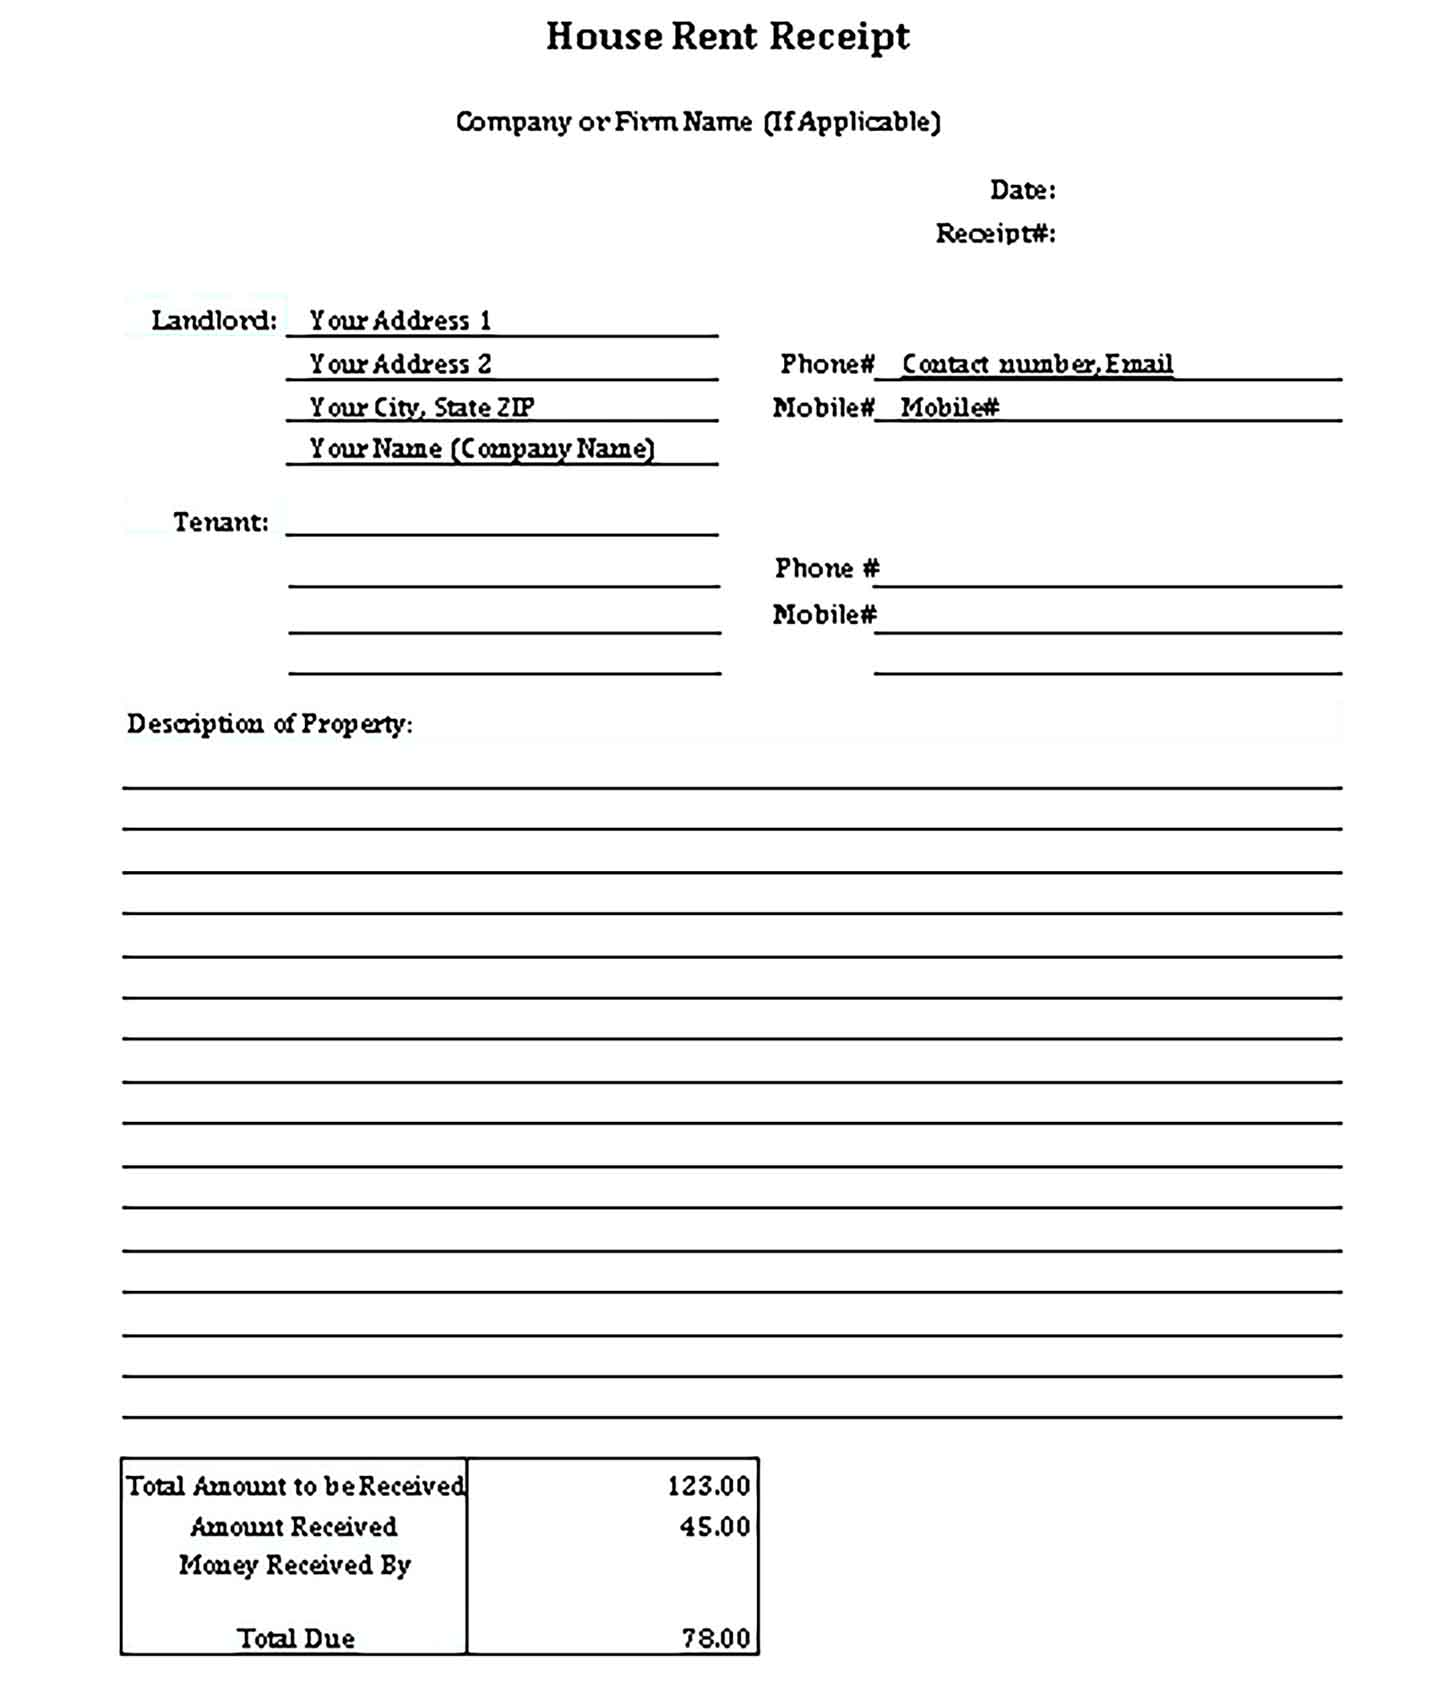 Sample House Rent Receipt Templates